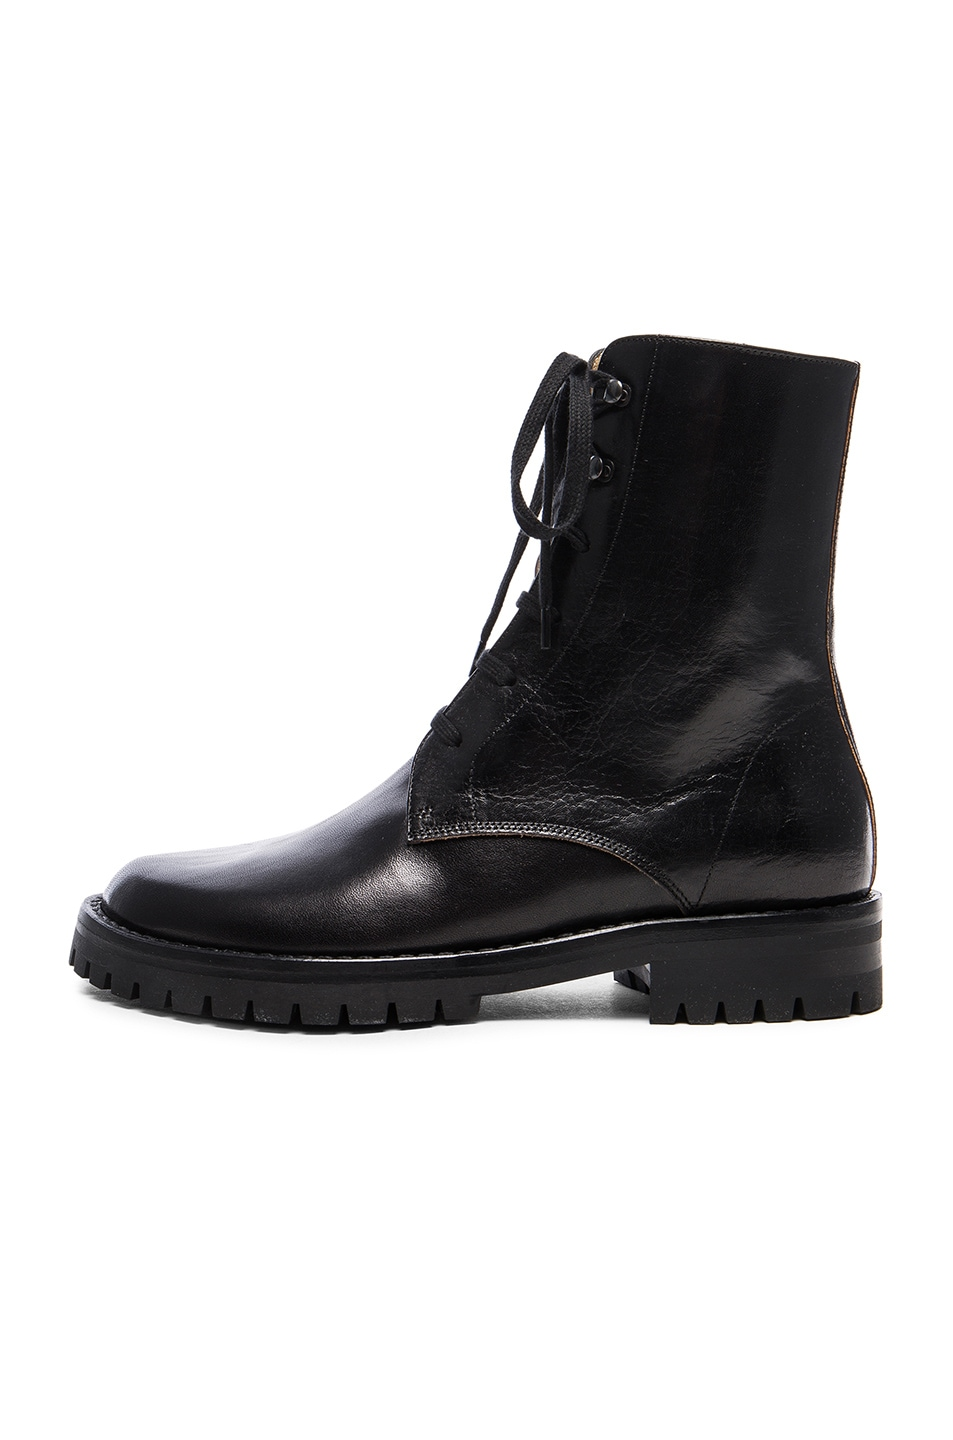 Image 5 of Ann Demeulemeester Leather Combat Boots in Black